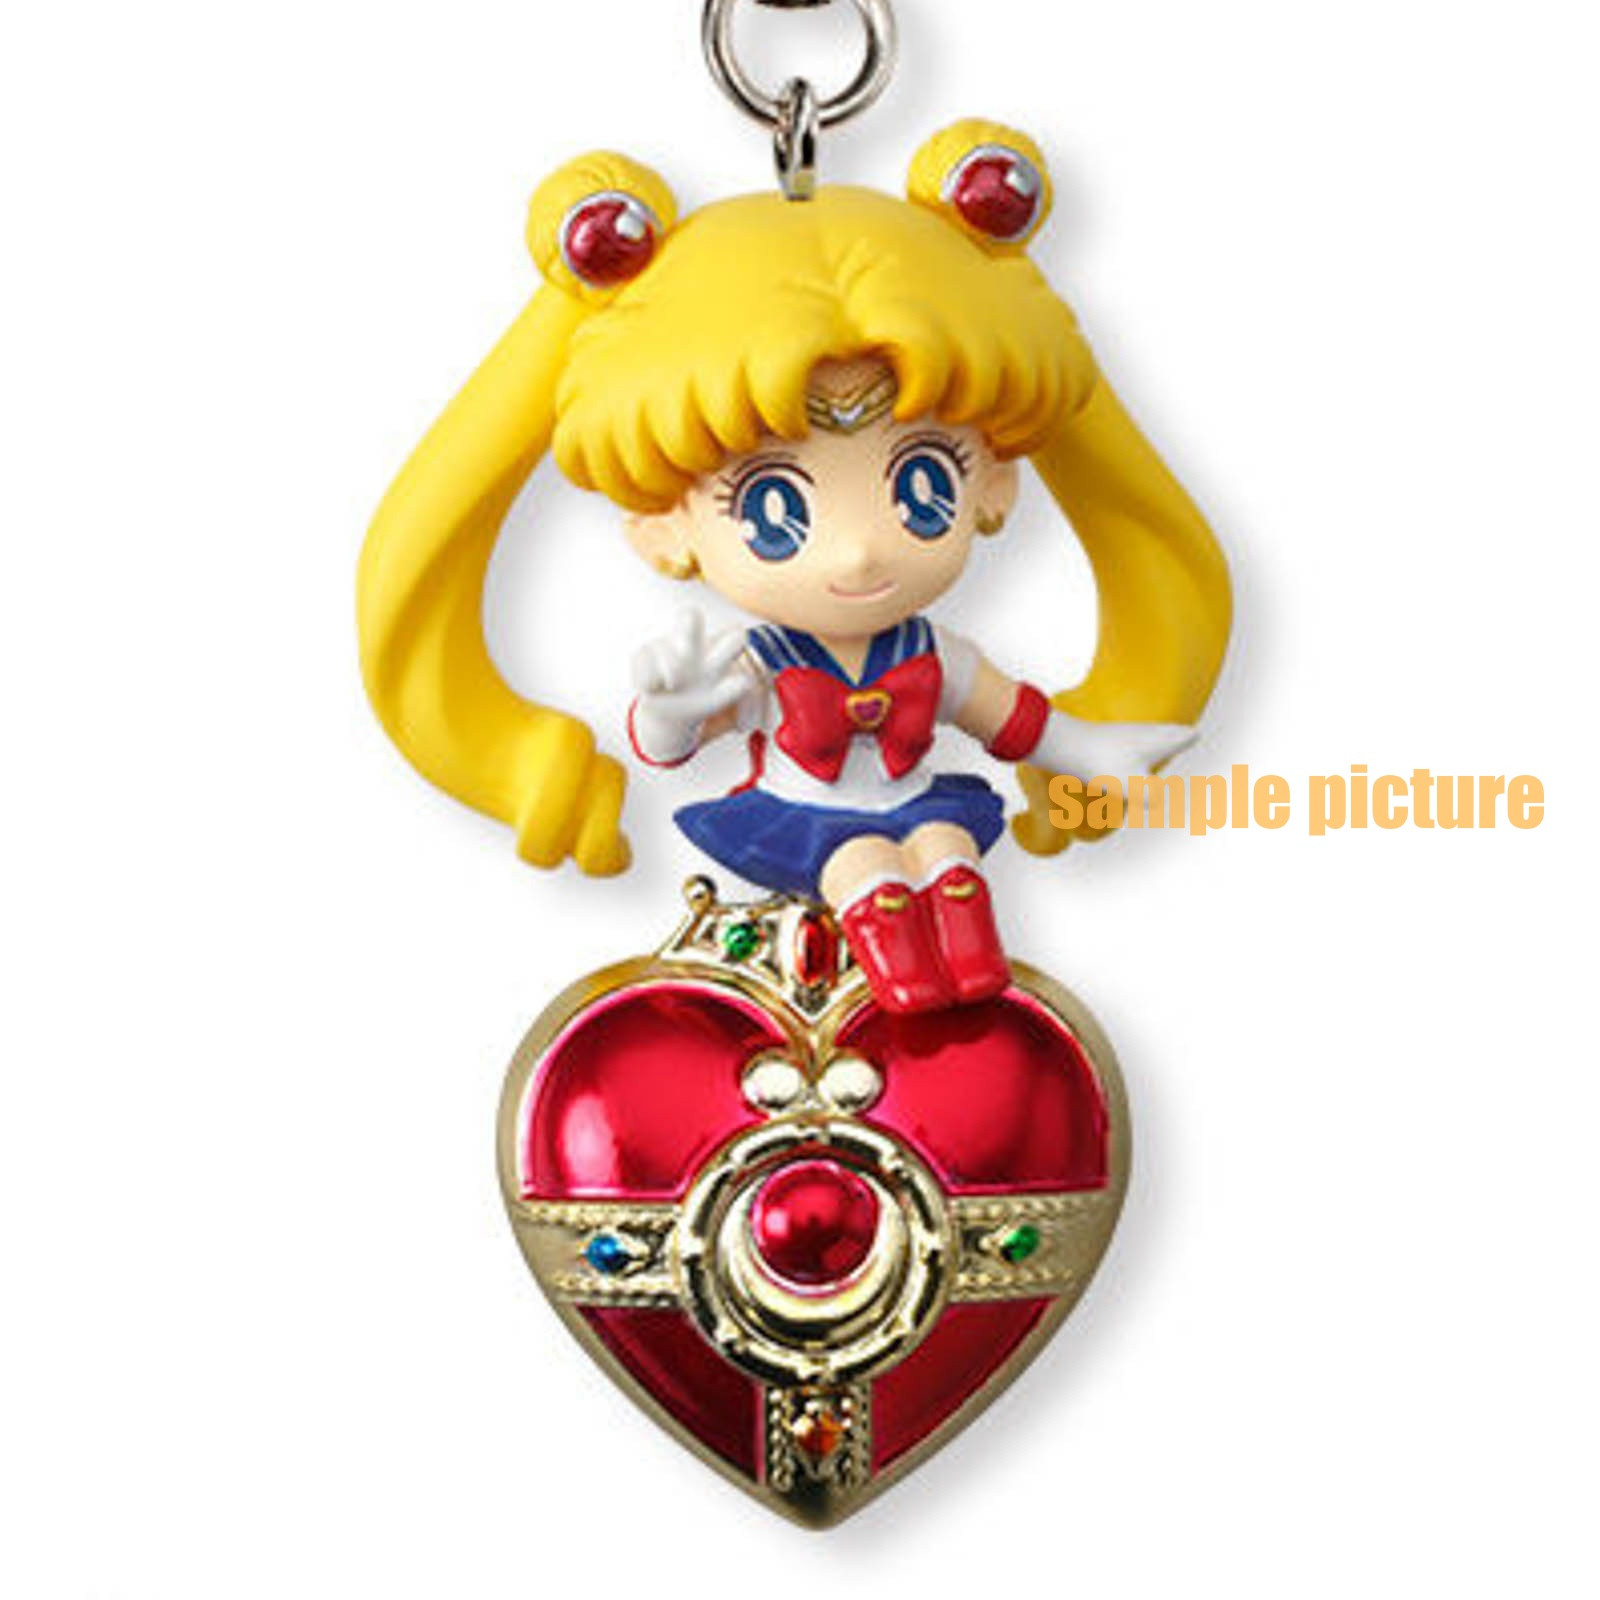 Sailor Moon Sailor Moon Twinkle Dolly 2 Figure Strap JAPAN ANIME